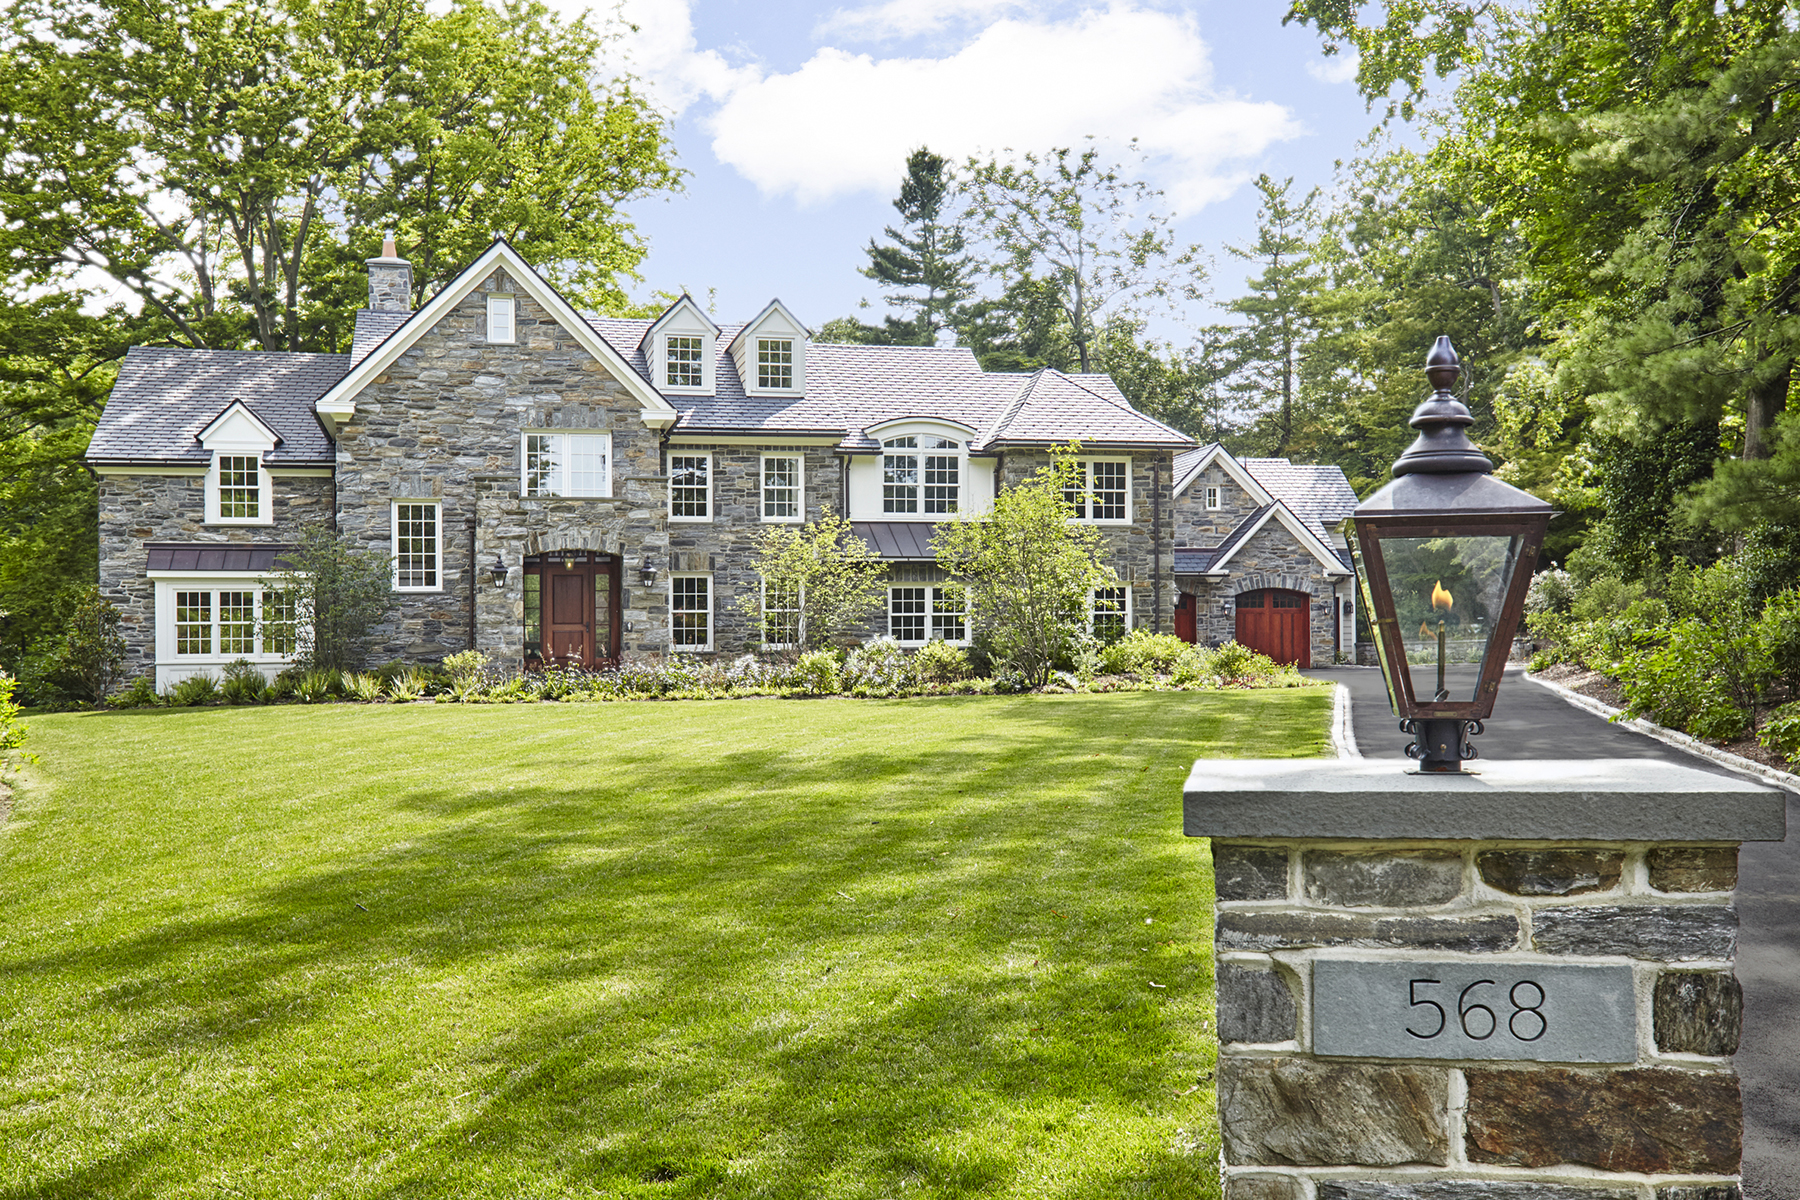 Villa per Vendita alle ore Exquisitely Crafted Estate 568 Ferndale Ln. Haverford, Pensilvania, 19041 Stati Uniti